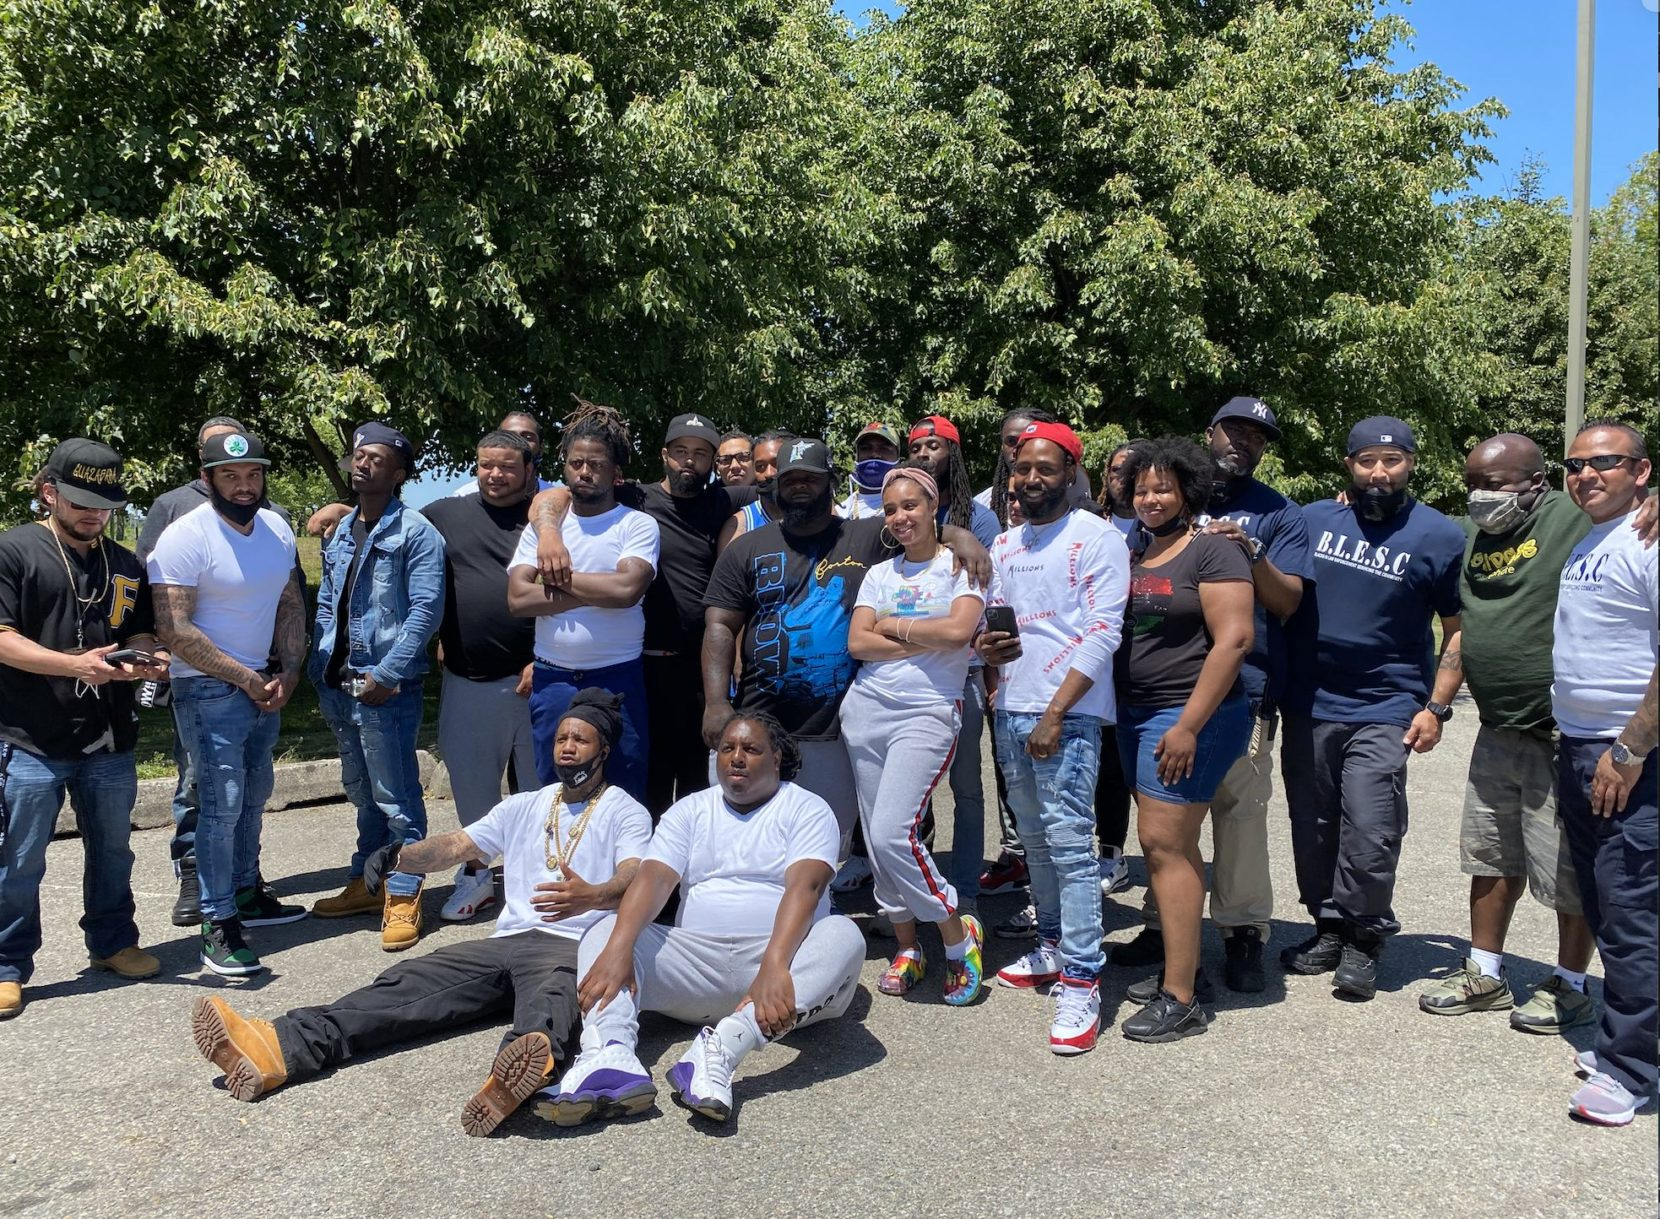 A Call For Peace in Jersey City